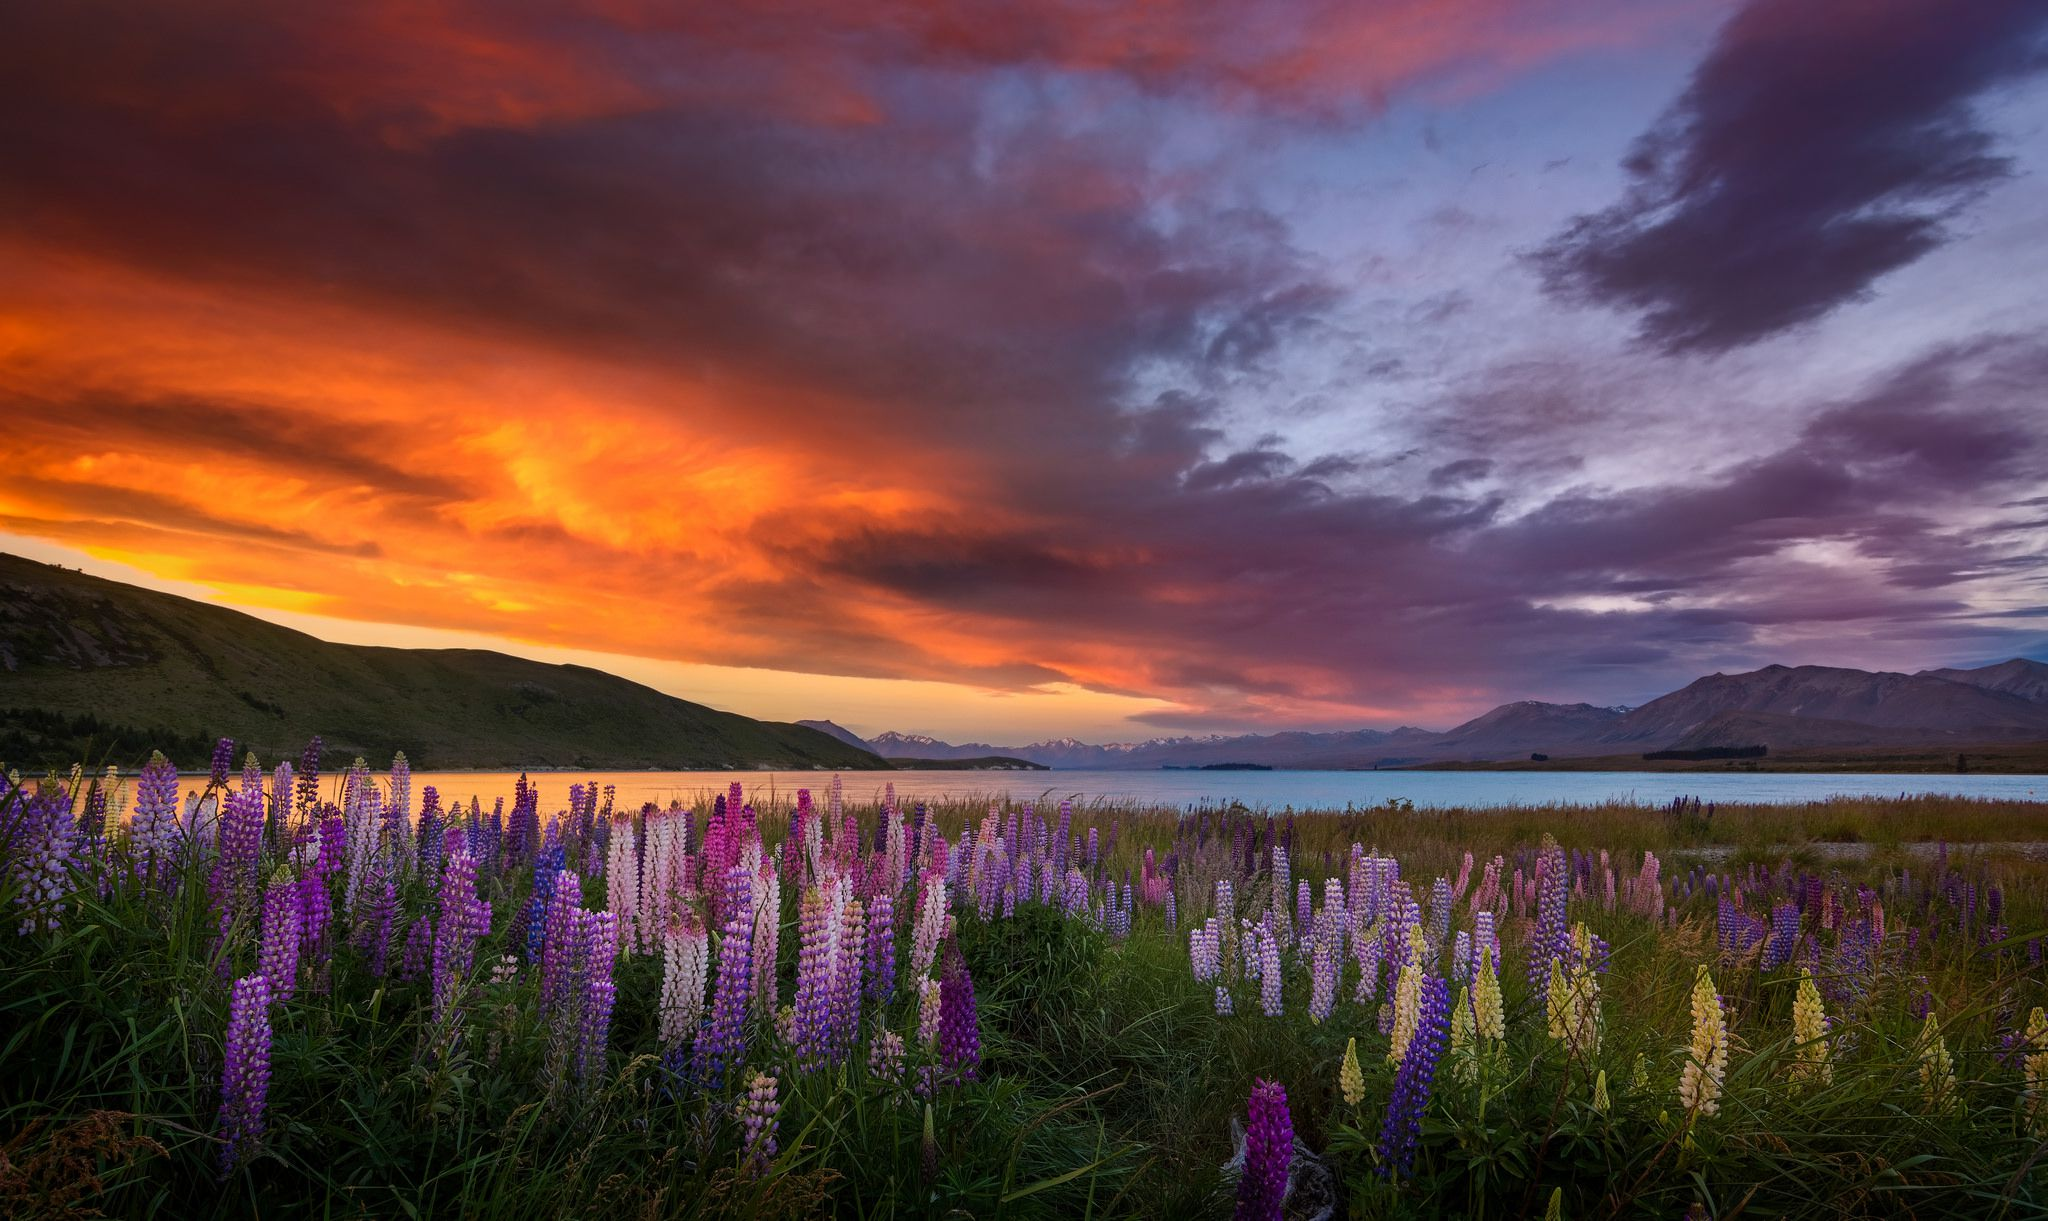 lupins field at sunset